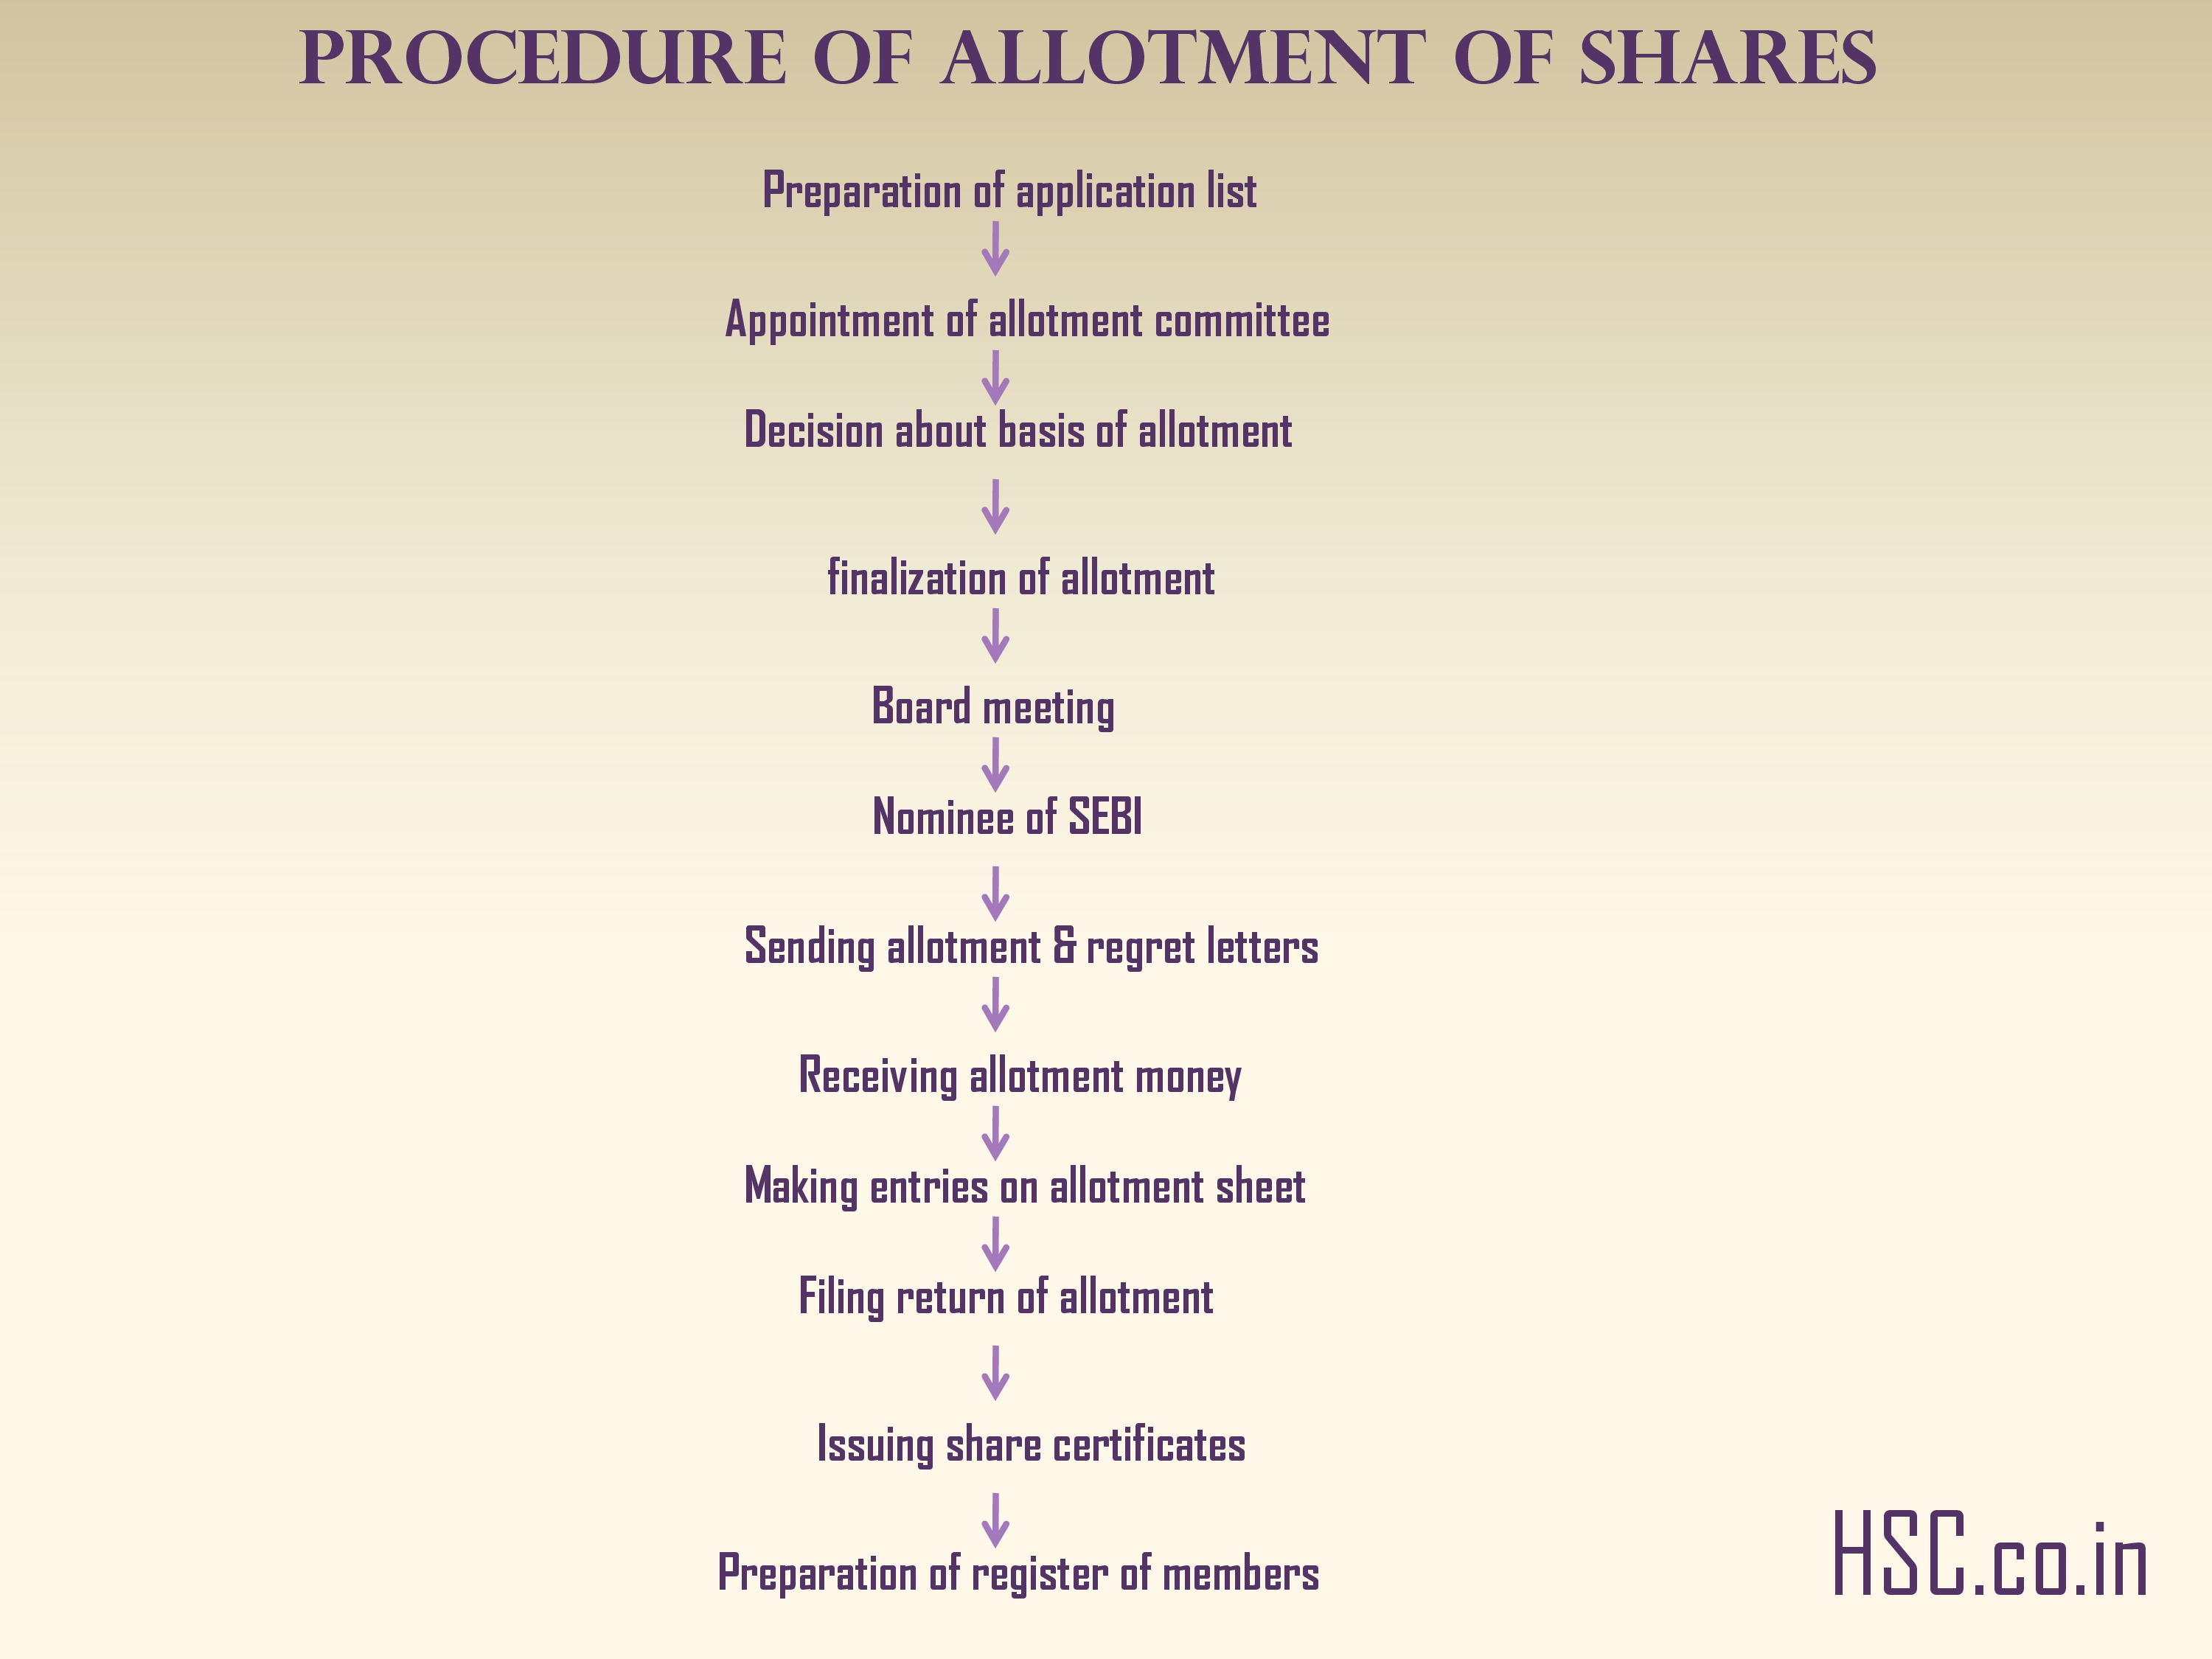 PROCEDURE OF ALLOTMENT OF SHARES